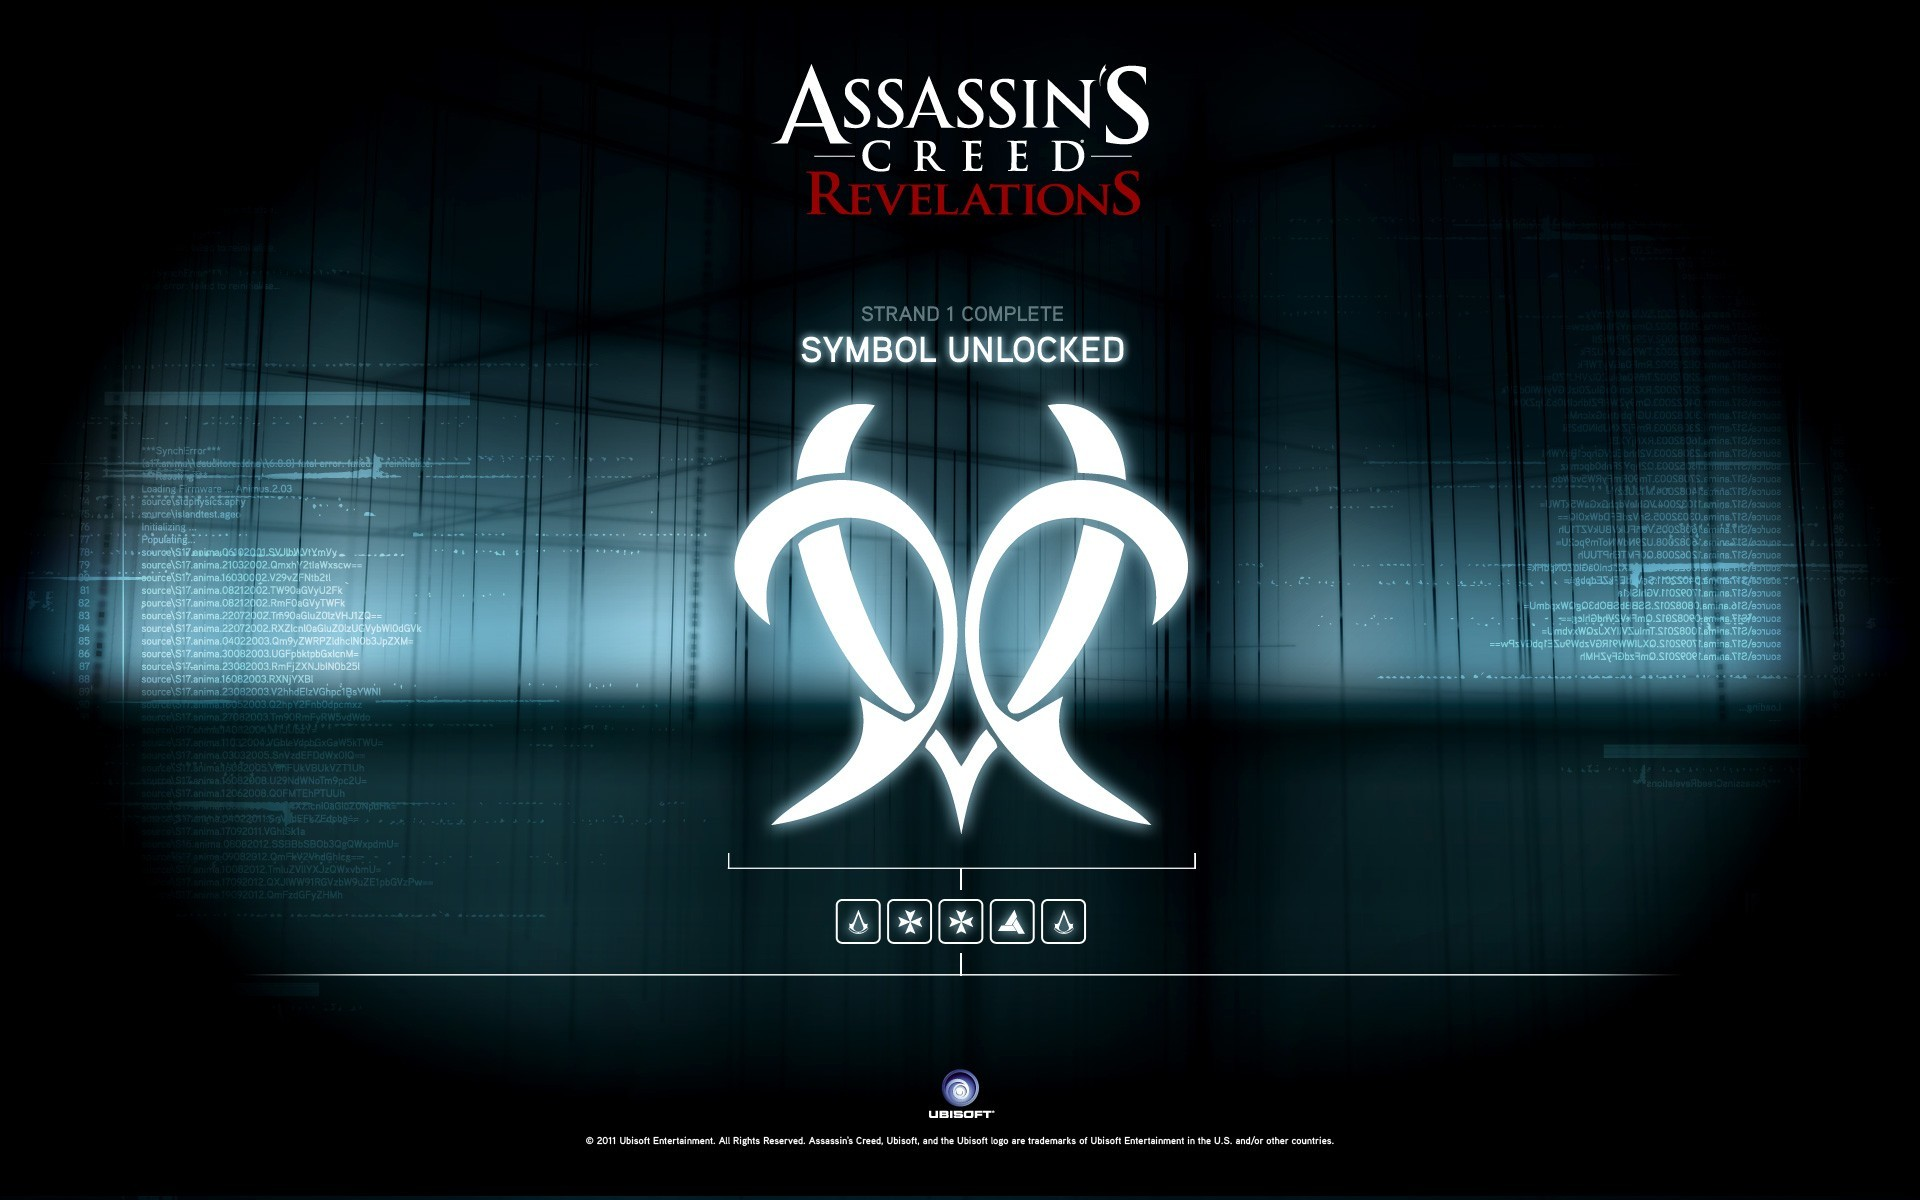 assassins creed assassins creed HD Wallpaper